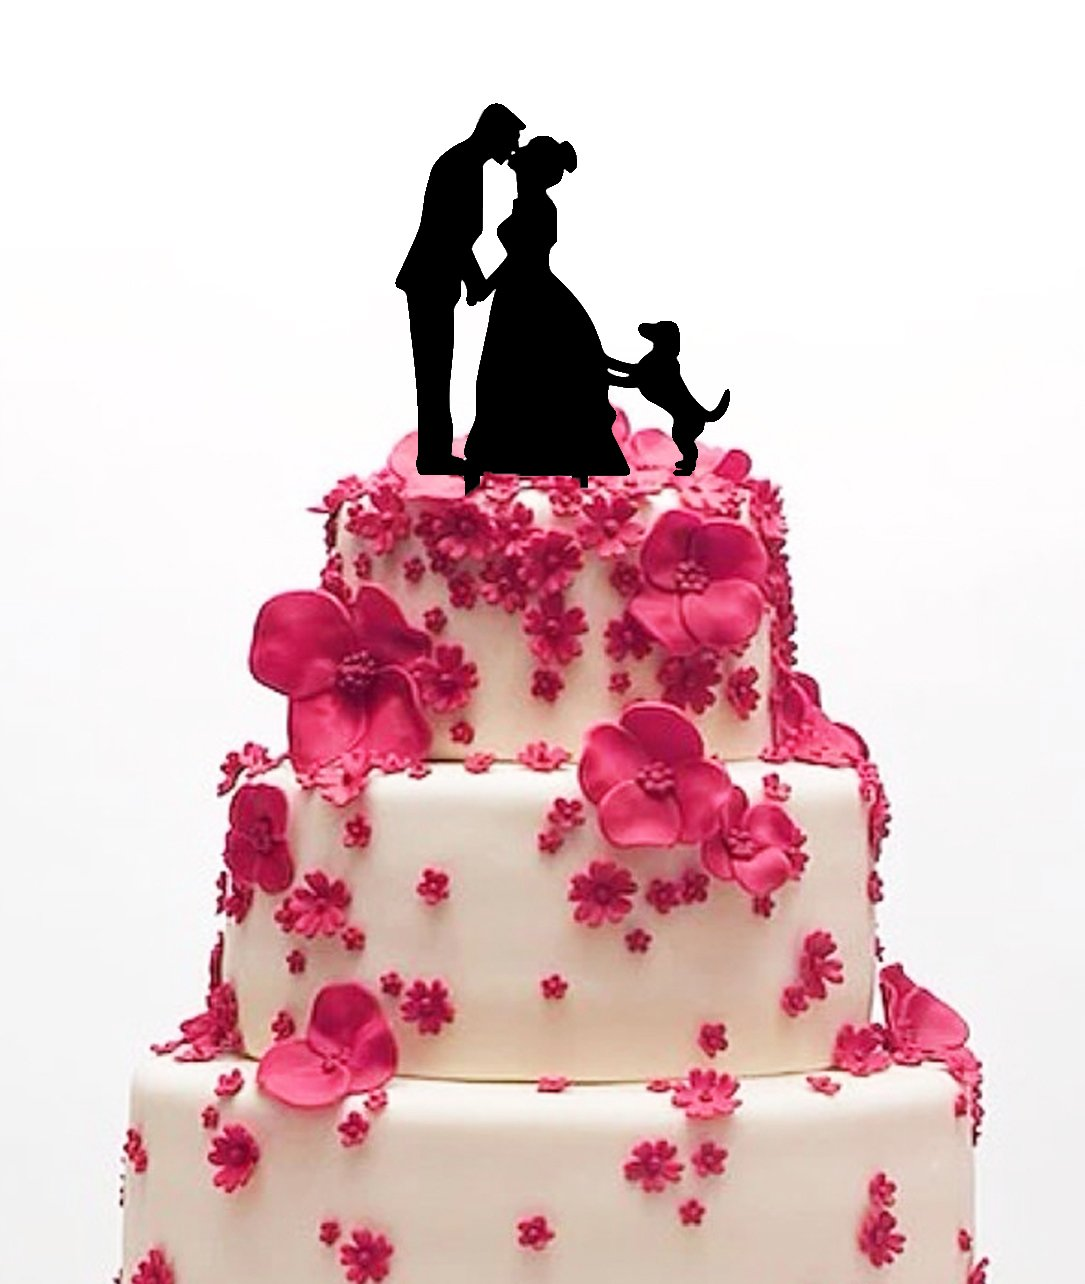 Amazon.com: Ecape Acrylic Cake Topper of Engagement and Wedding with ...